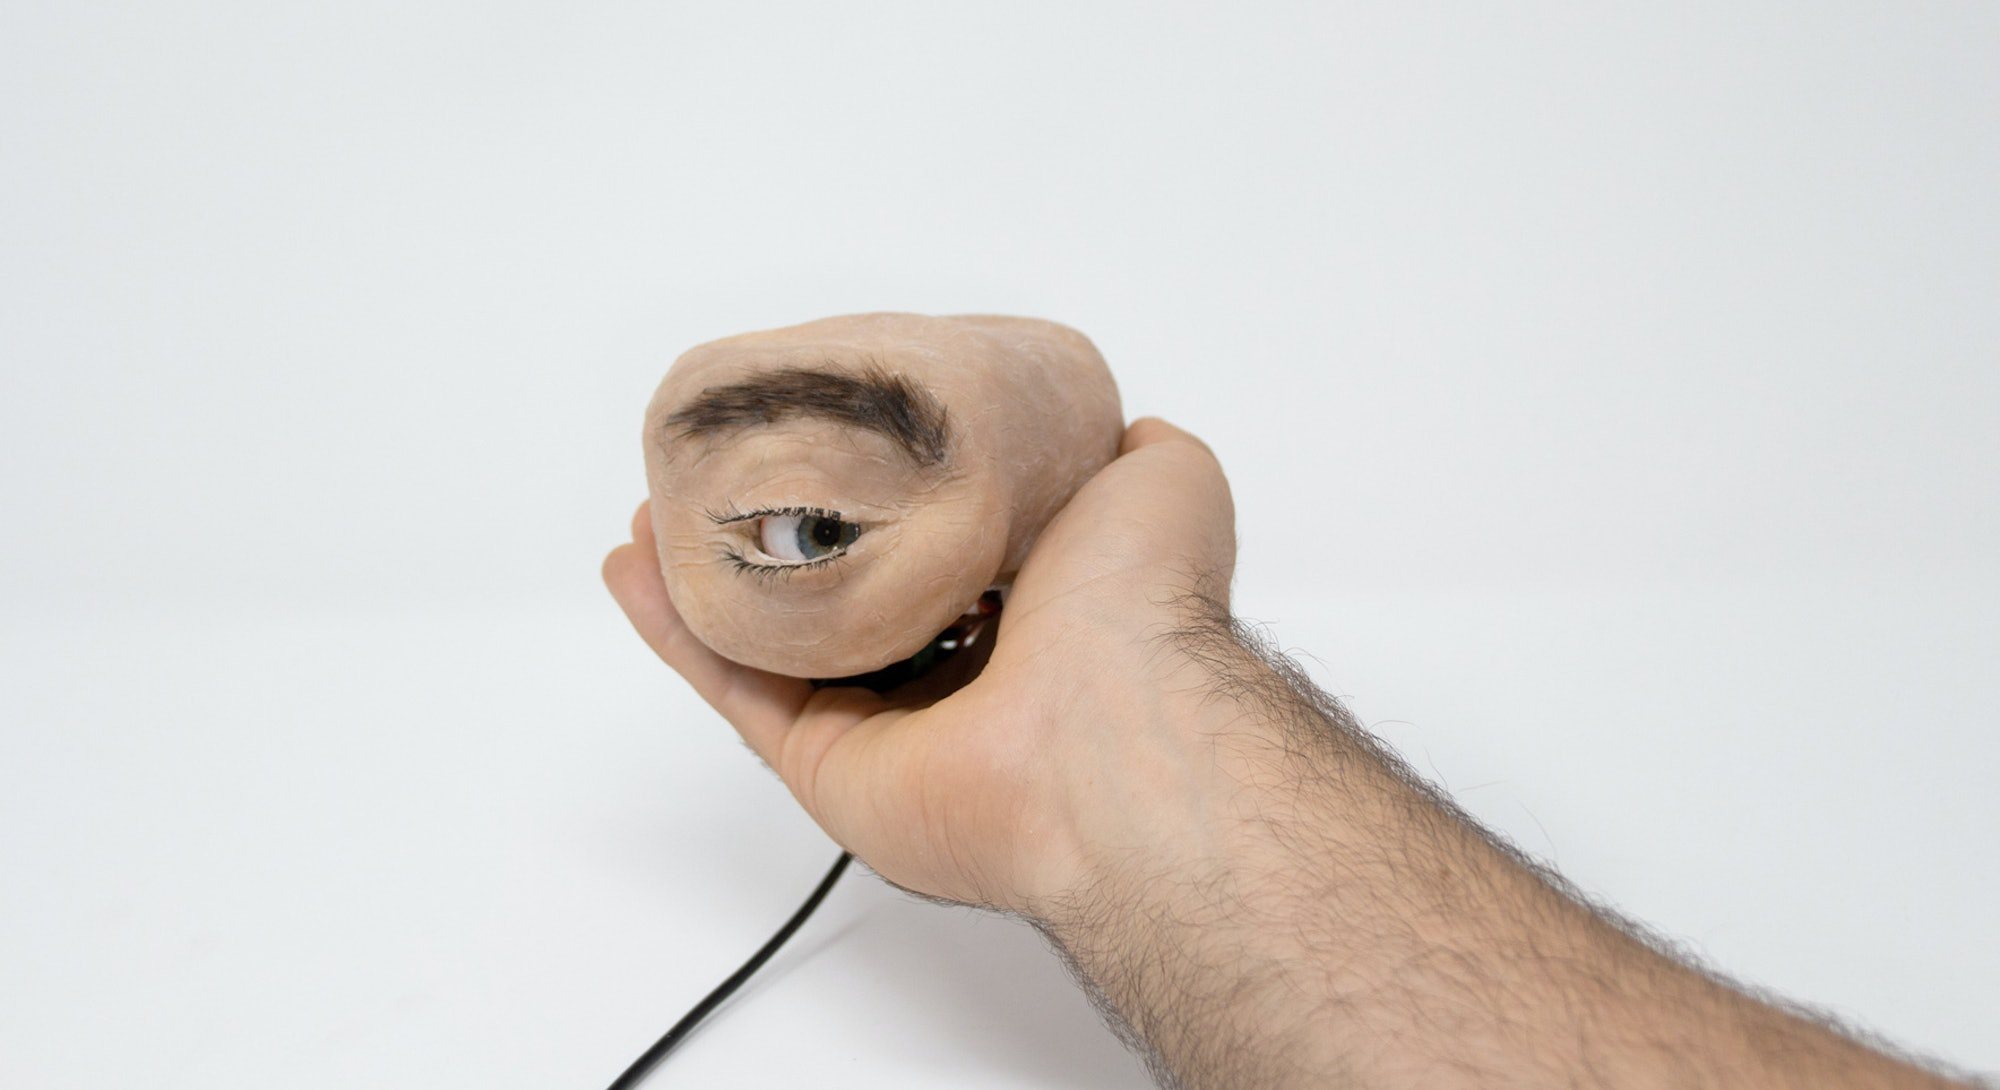 A close-up view of the Eyecam